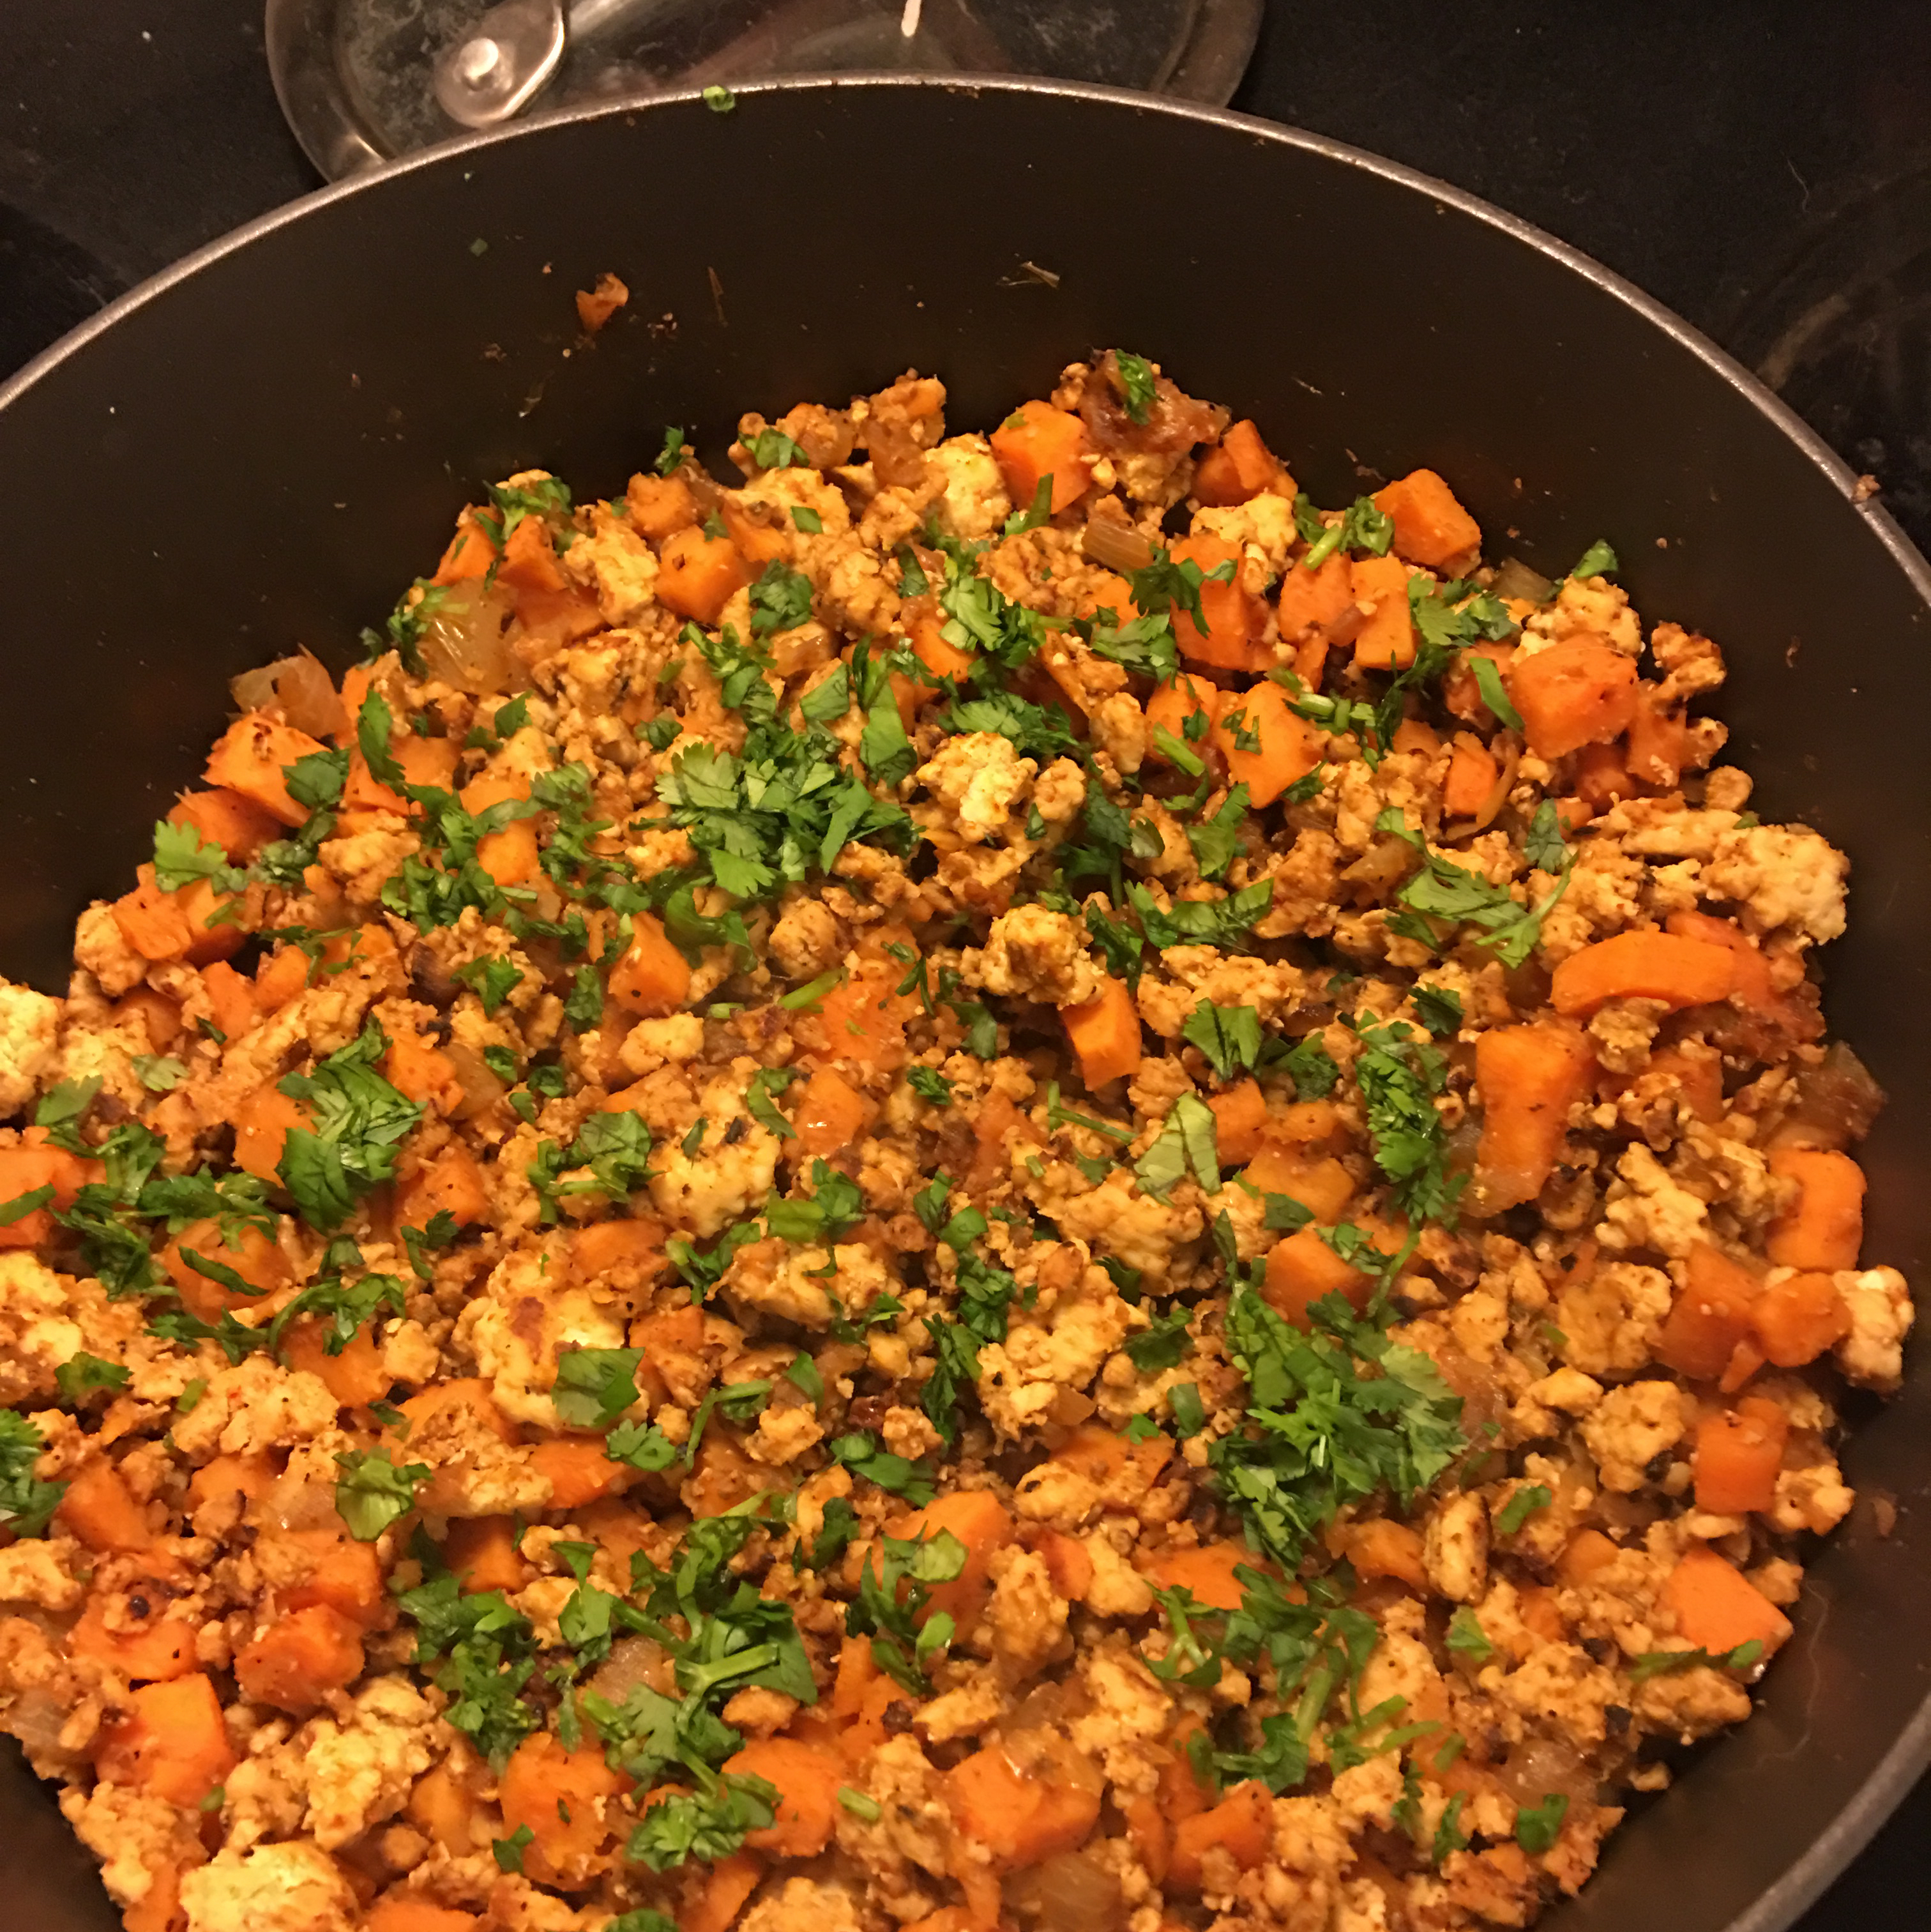 Turkey and Yam Spicy Tacos